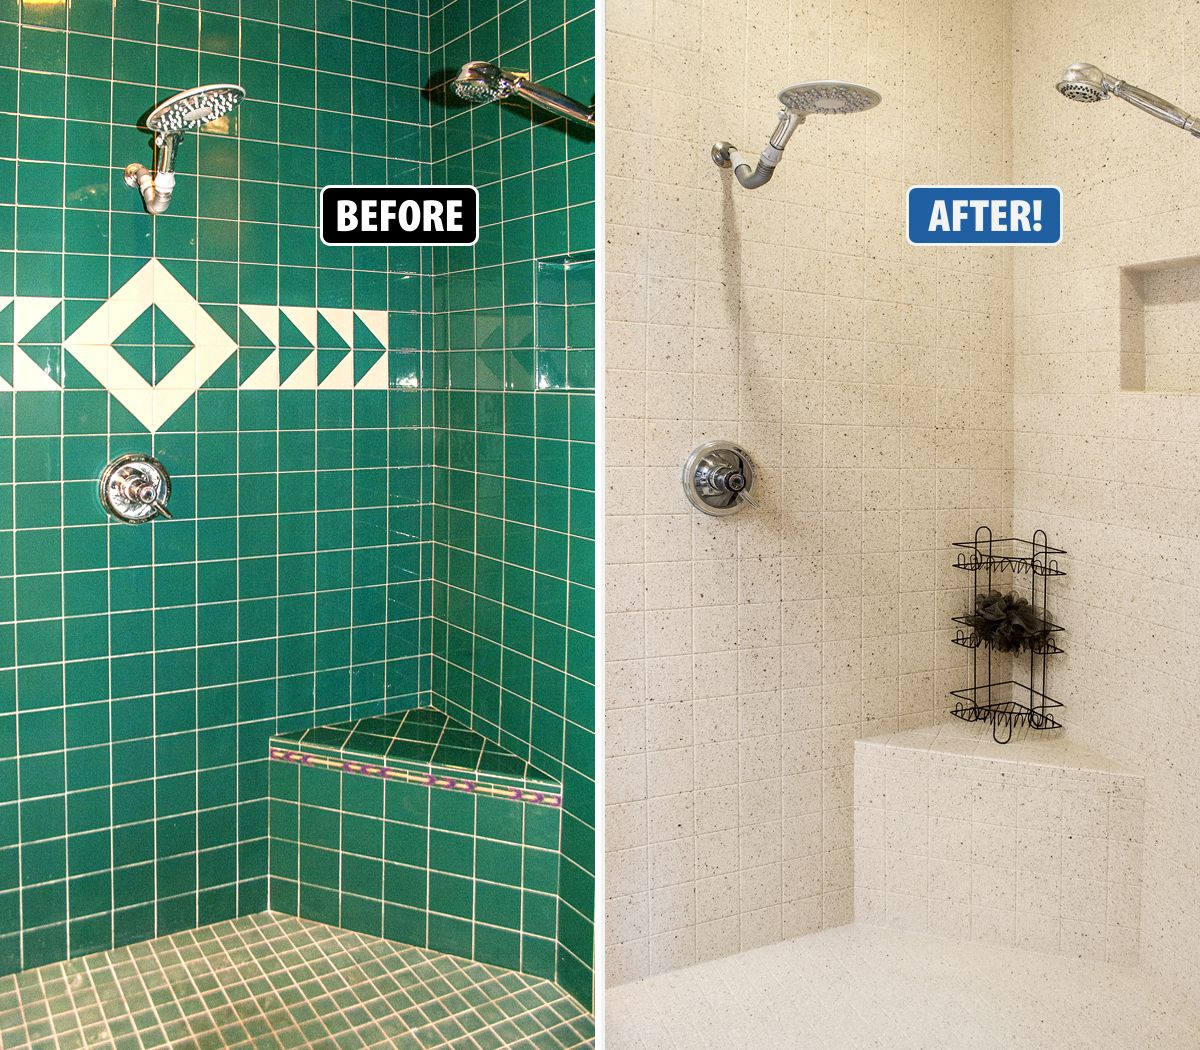 Update Your Ceramic Tile Without Replacement With Refinishing By Miracle Method We Refinish The Tile In Plac With Images Tile Refinishing Refinish Bathtub Bathroom Update